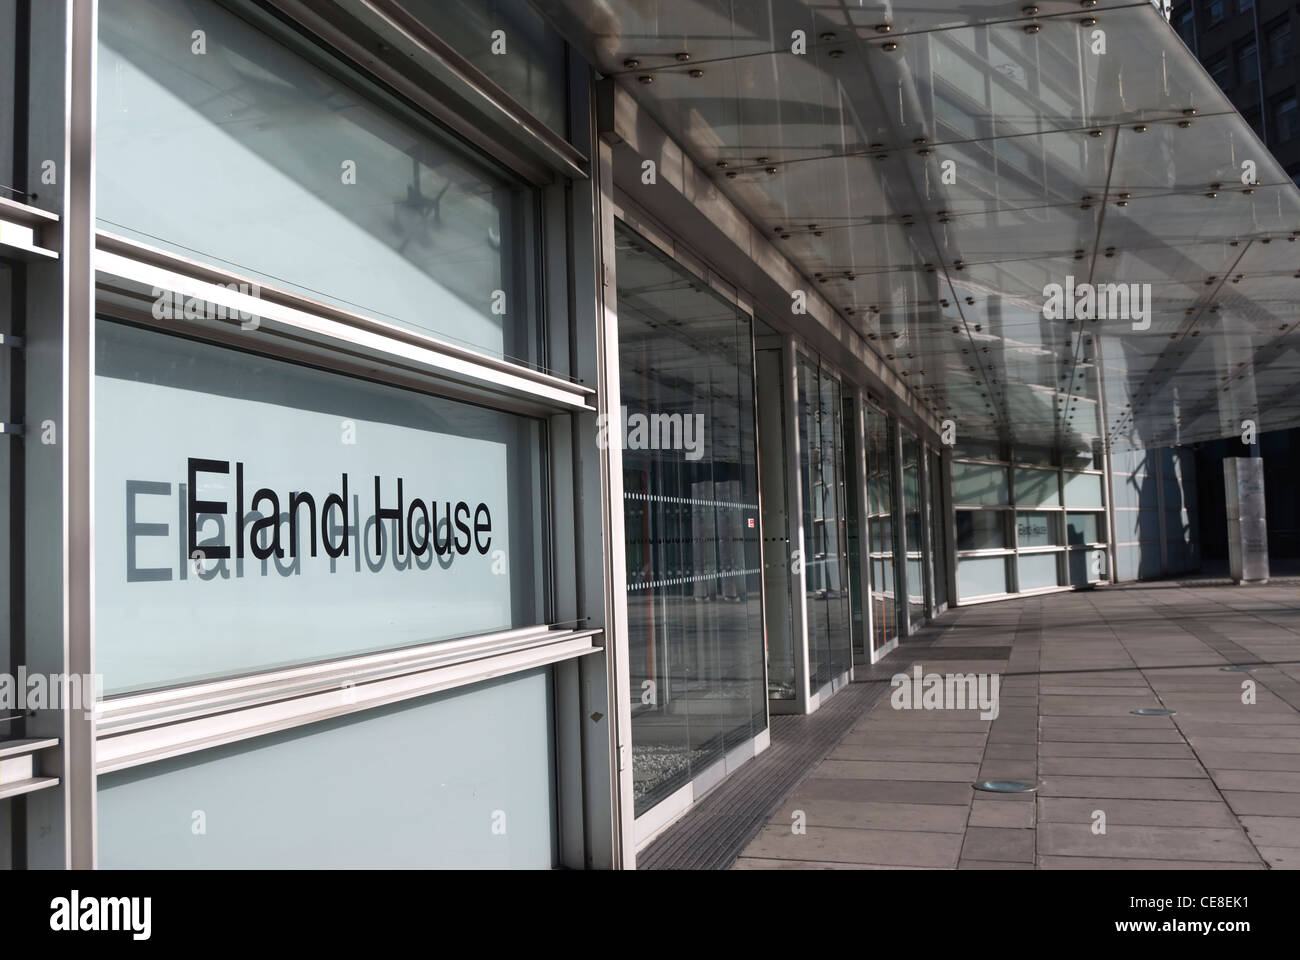 the 1995 eland house, london, england, by epr architects, occupied by the department of communities and local government - Stock Image